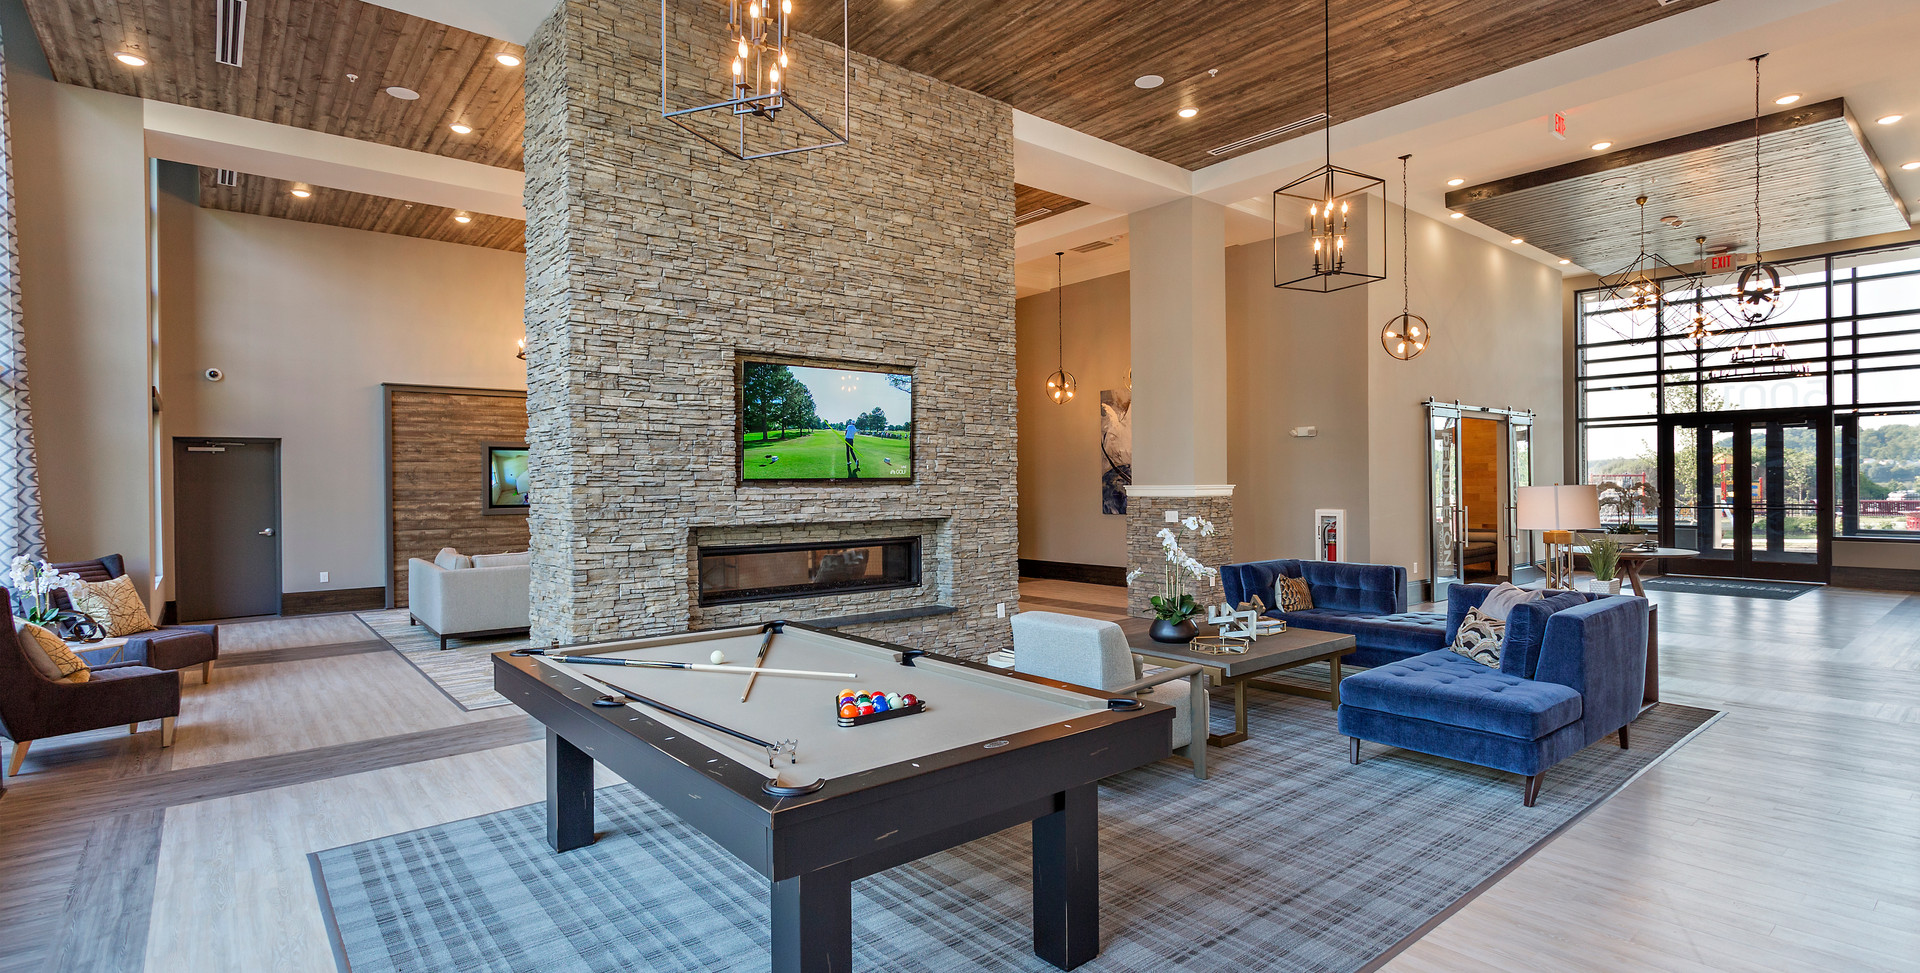 Clubhouse with Pool Table 2.jpg